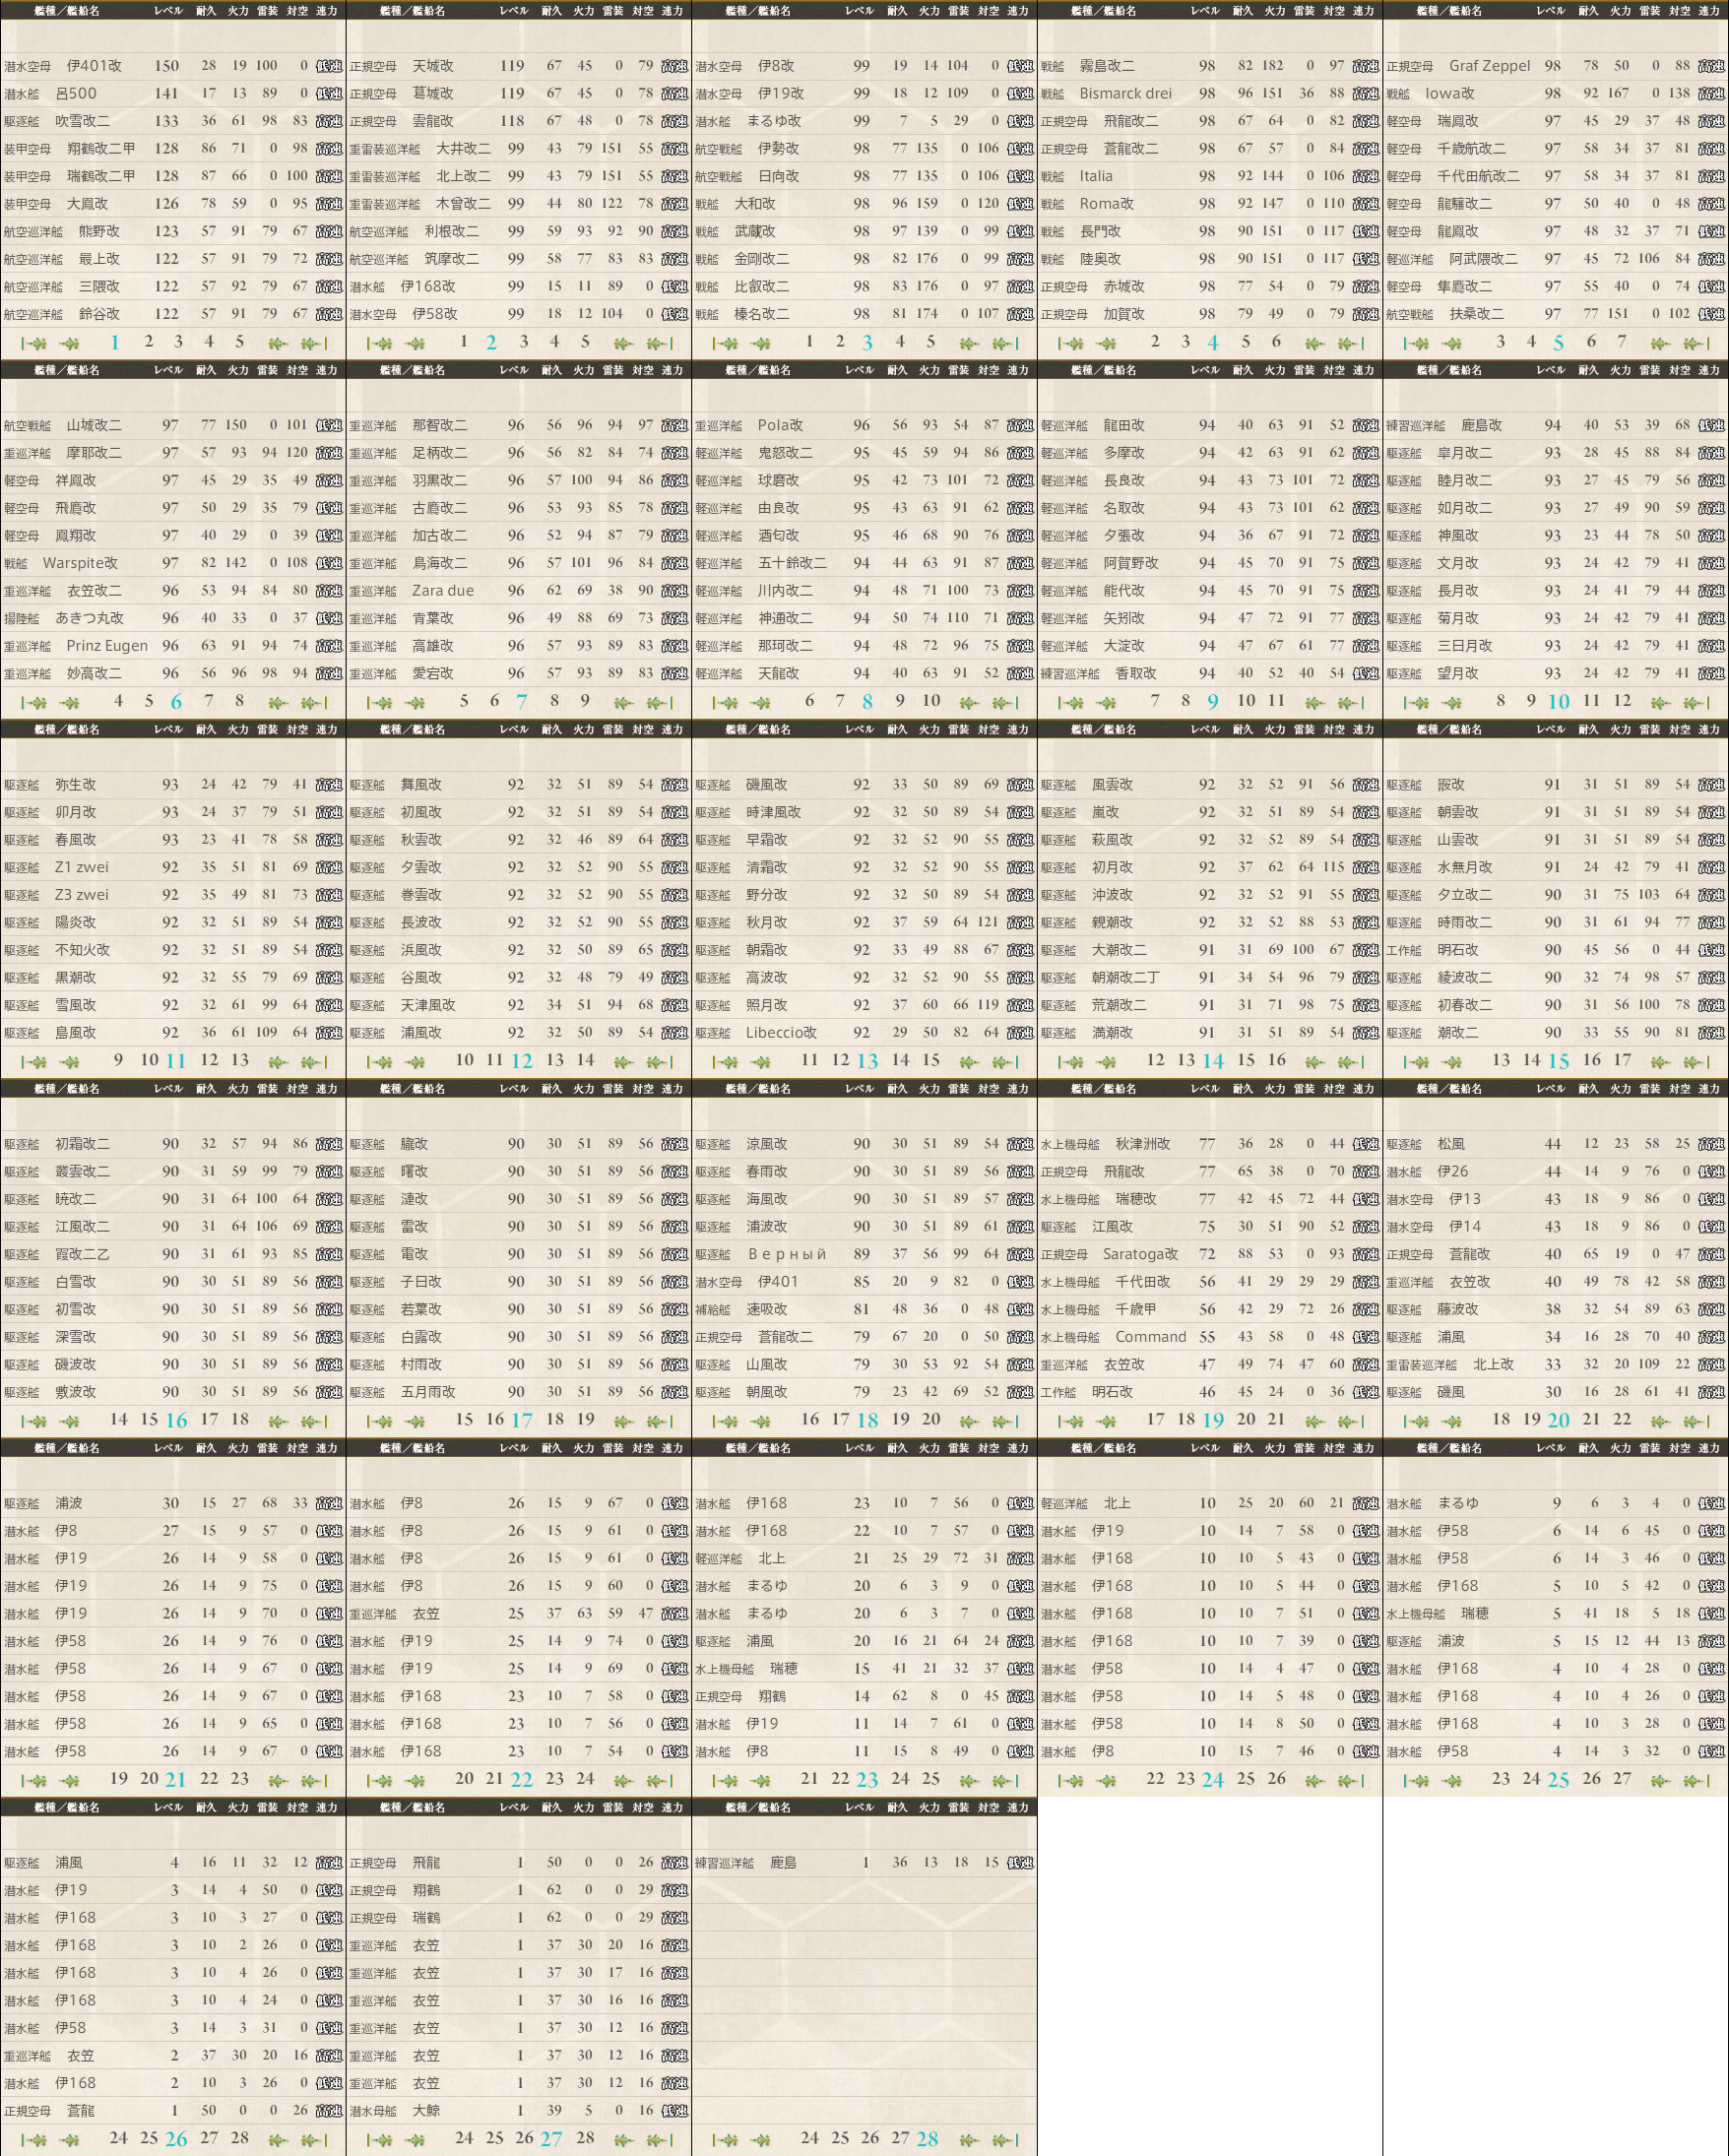 data.kancolle.levelsort.20170319.png